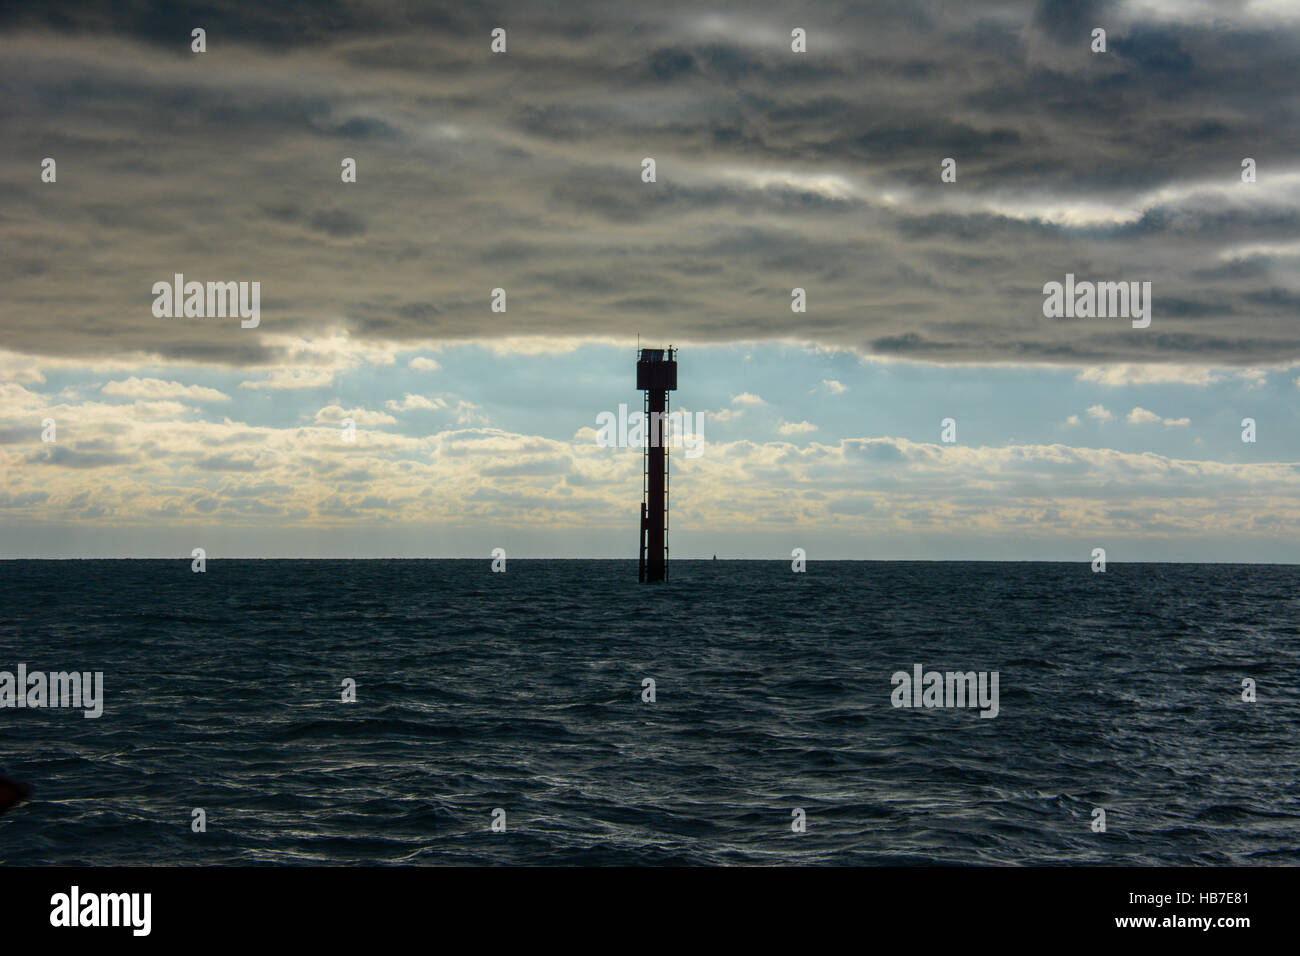 Mid channel marker post seems to be holding up the strong November sky full of clouds over the dark blue sea Stock Photo